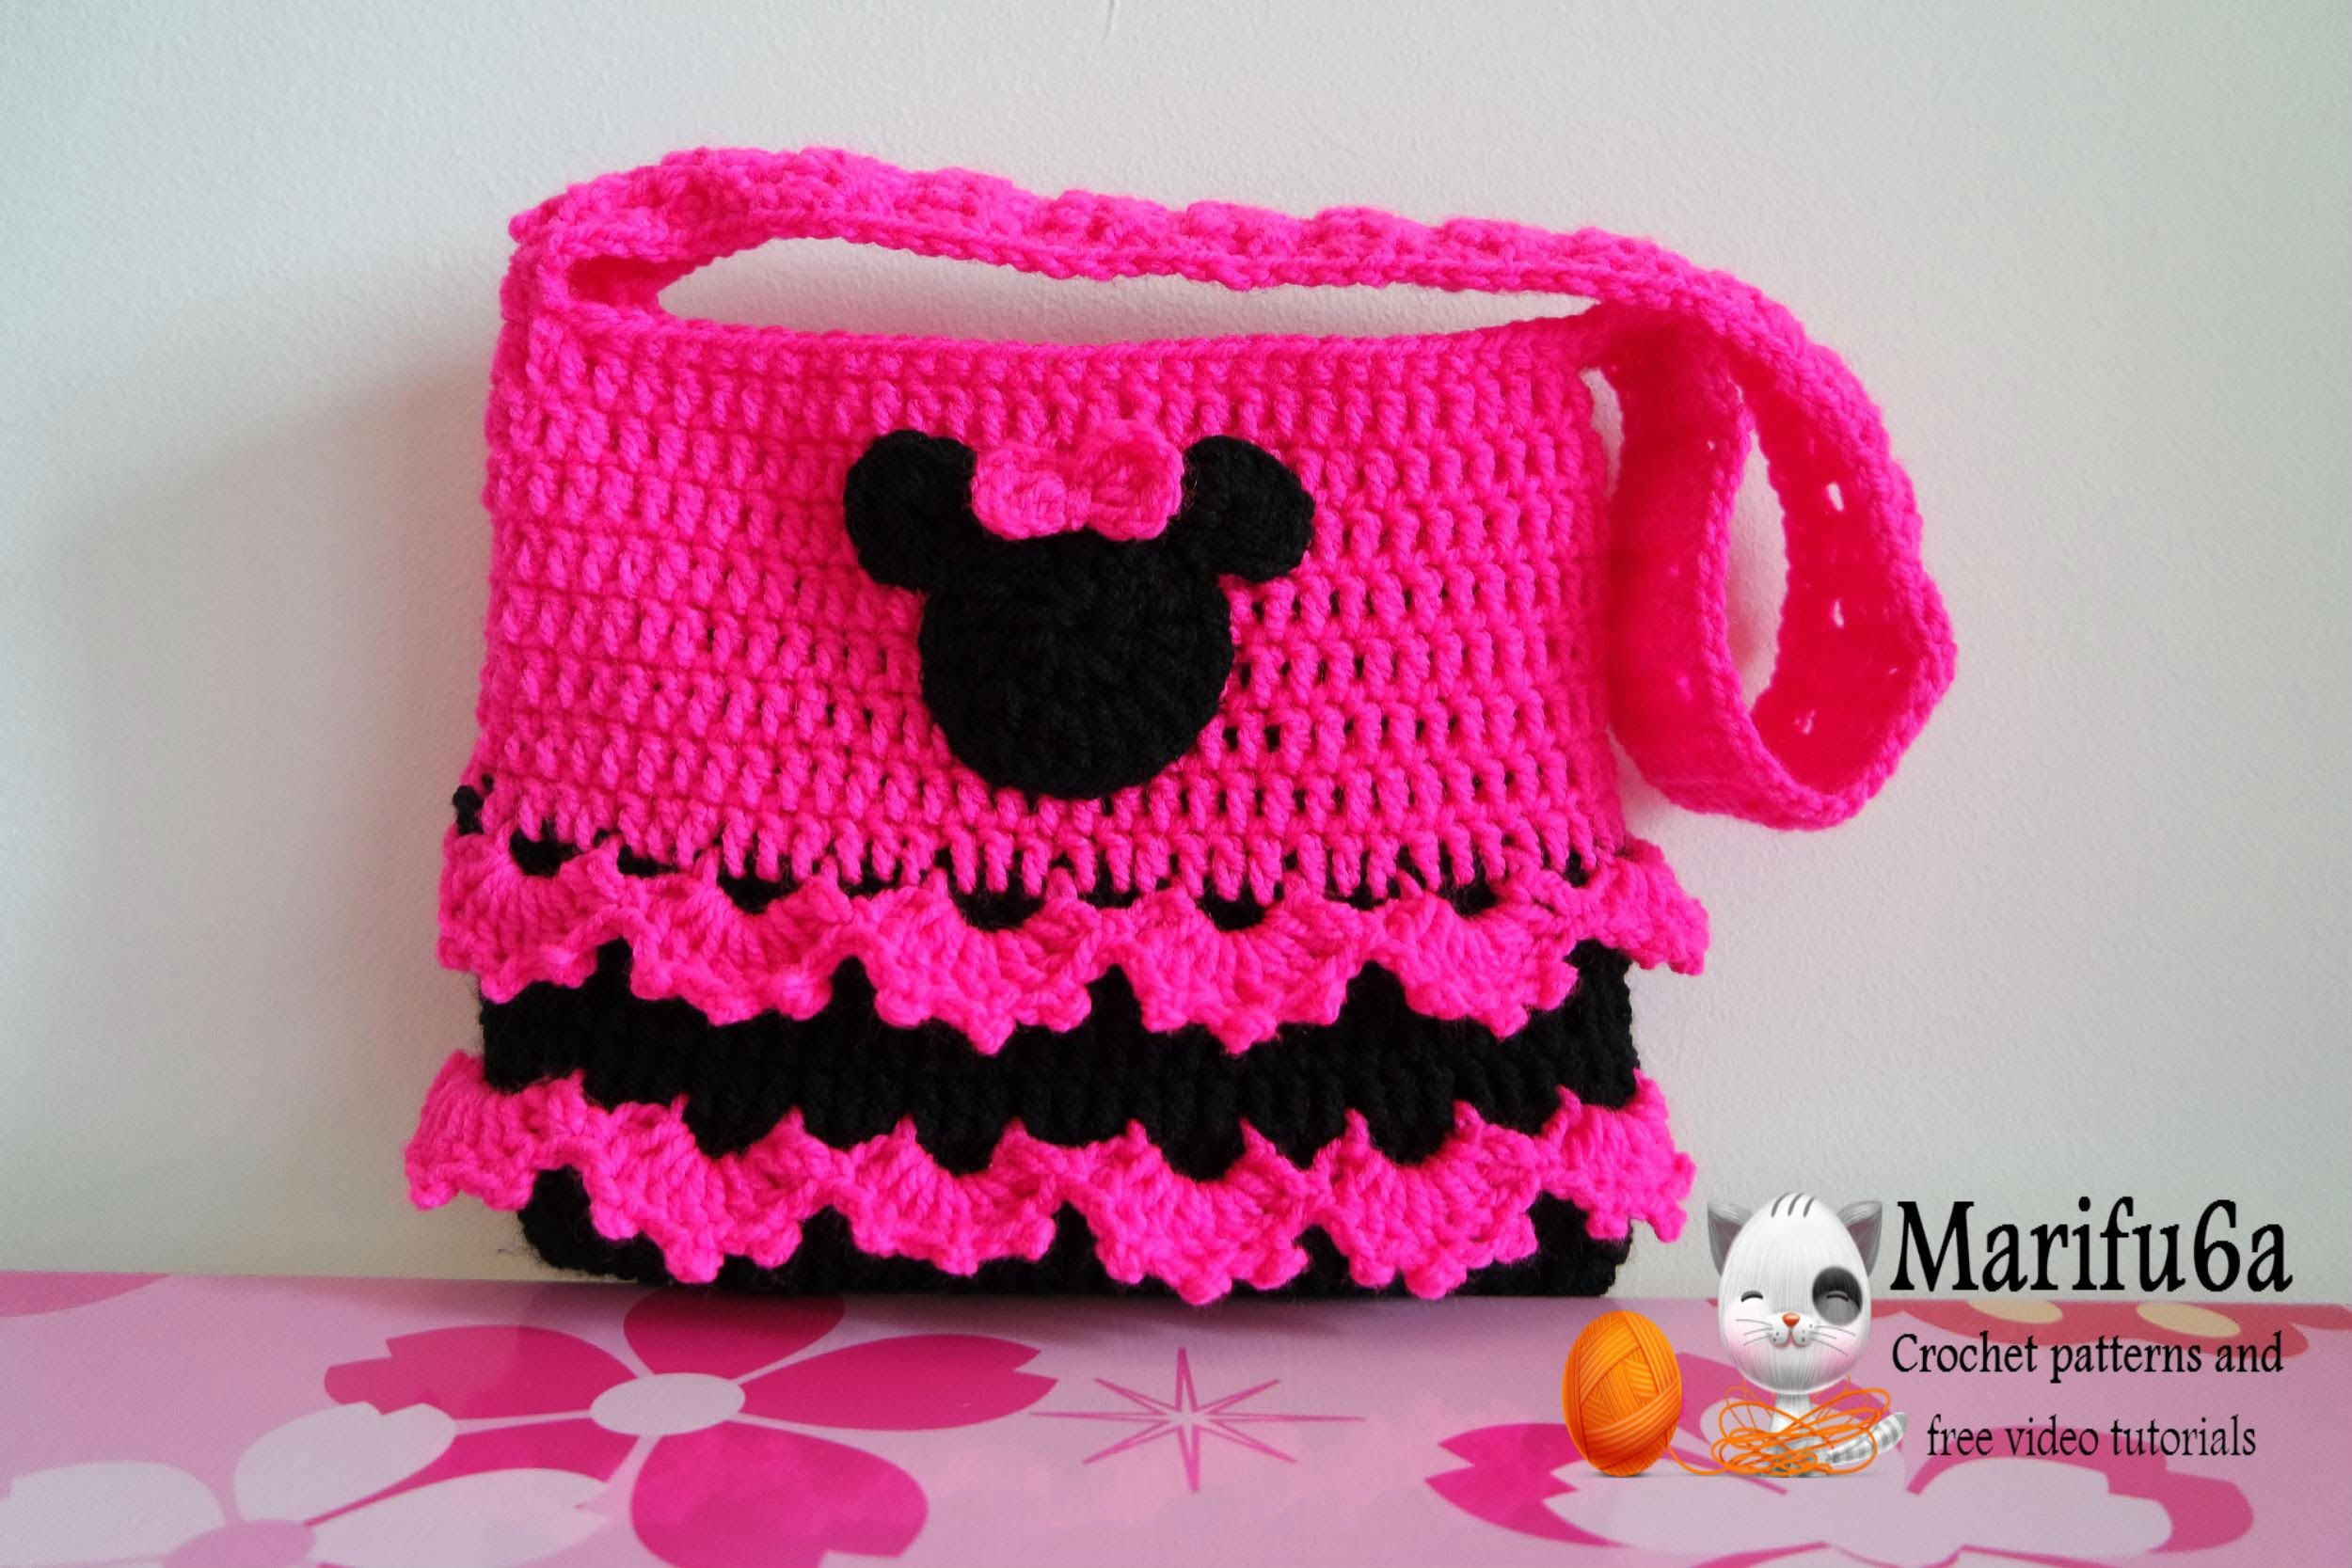 How to crochet minnie mouse bag purse full free pattern tutorial for ...